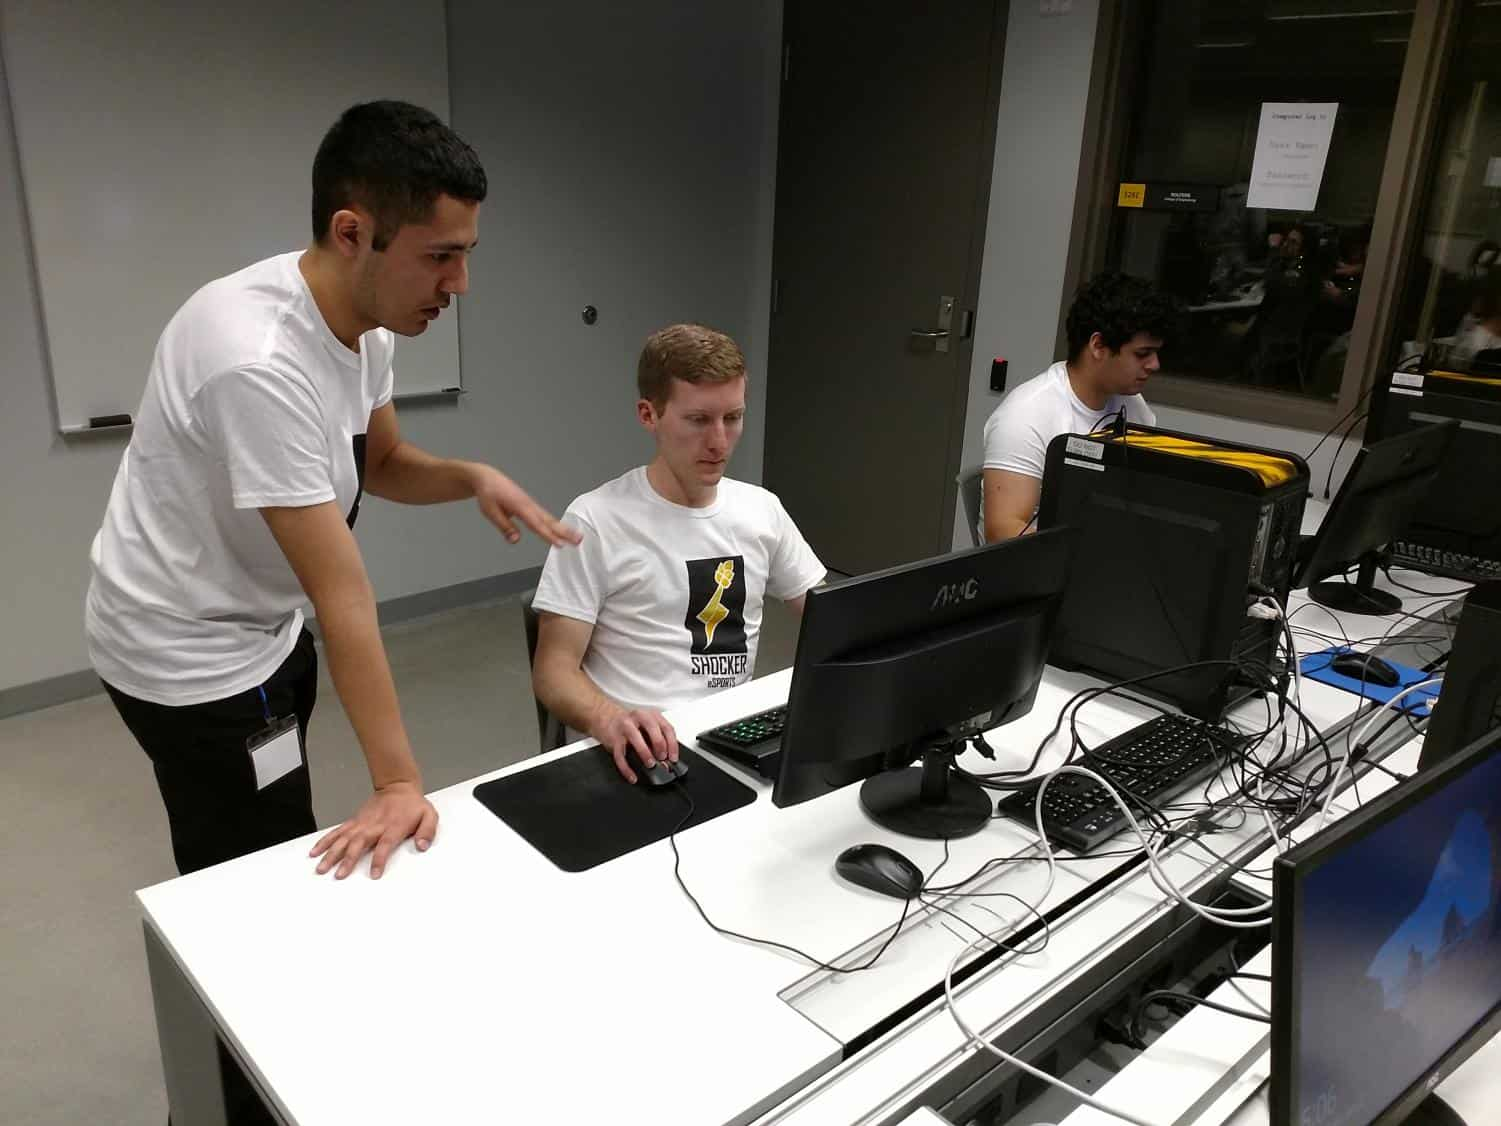 Members of Wichita State's League of Legends team, Alpha Shocks, warm up before a tournament held at the Experiential Engineering Building. Left to right: Julio Banuelos, Dylan Victor, Chandler Hoskins. (2017)